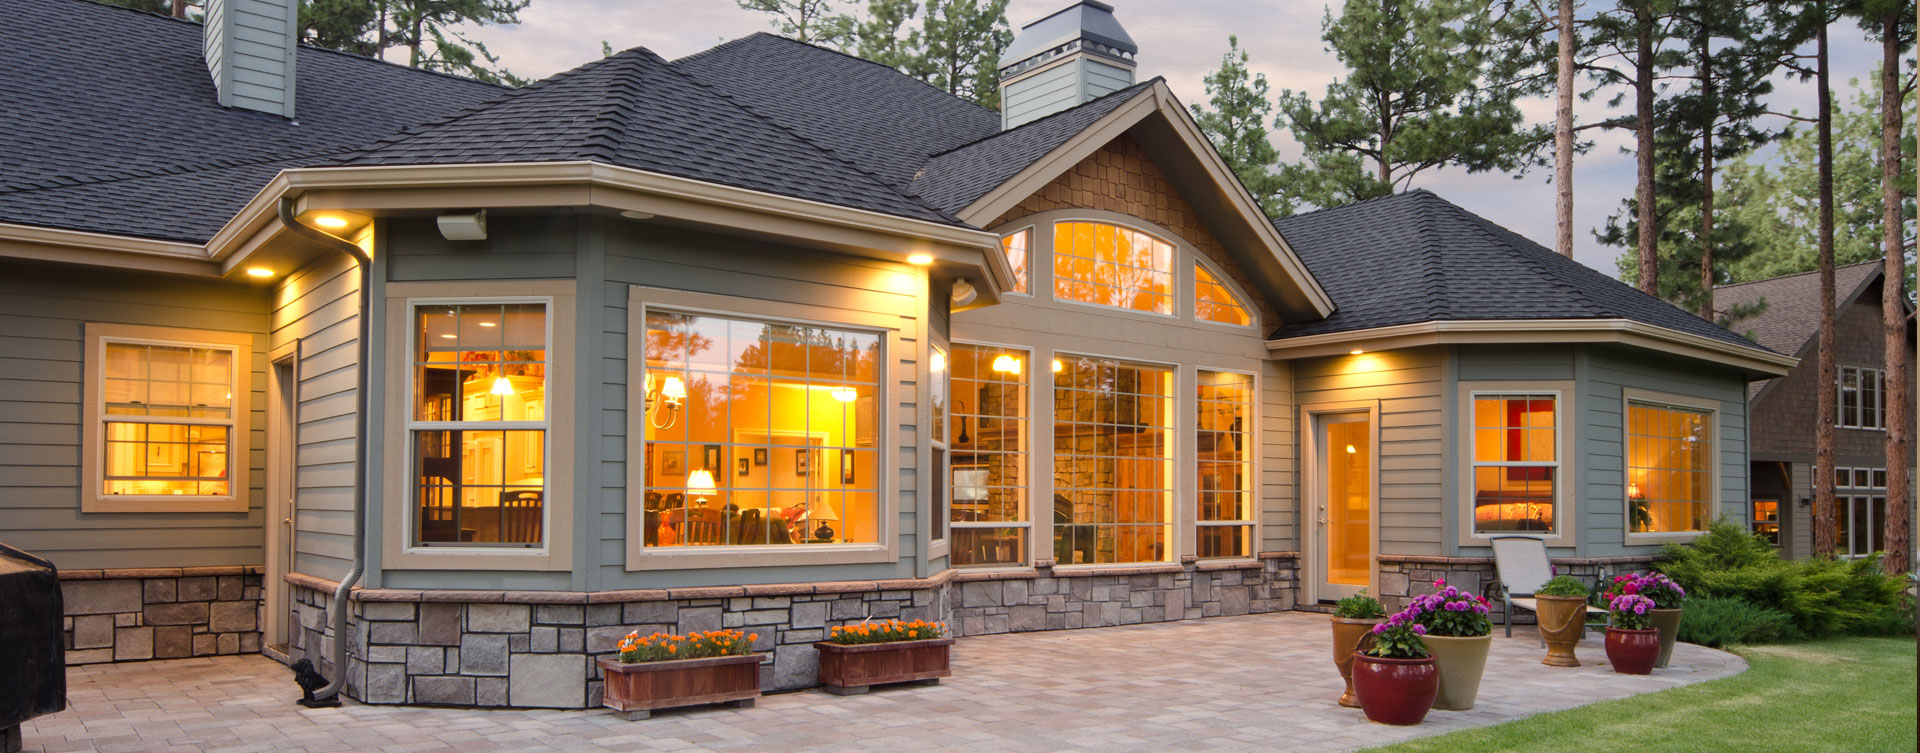 Arresting Energy Efficient Replacement Windows Can Reduce Heating Improve Your Curb Appeal Even Increase Valueof Your Fox Chase Windows Doors Contractors Pennsylvania houzz-03 Northeast Building Products